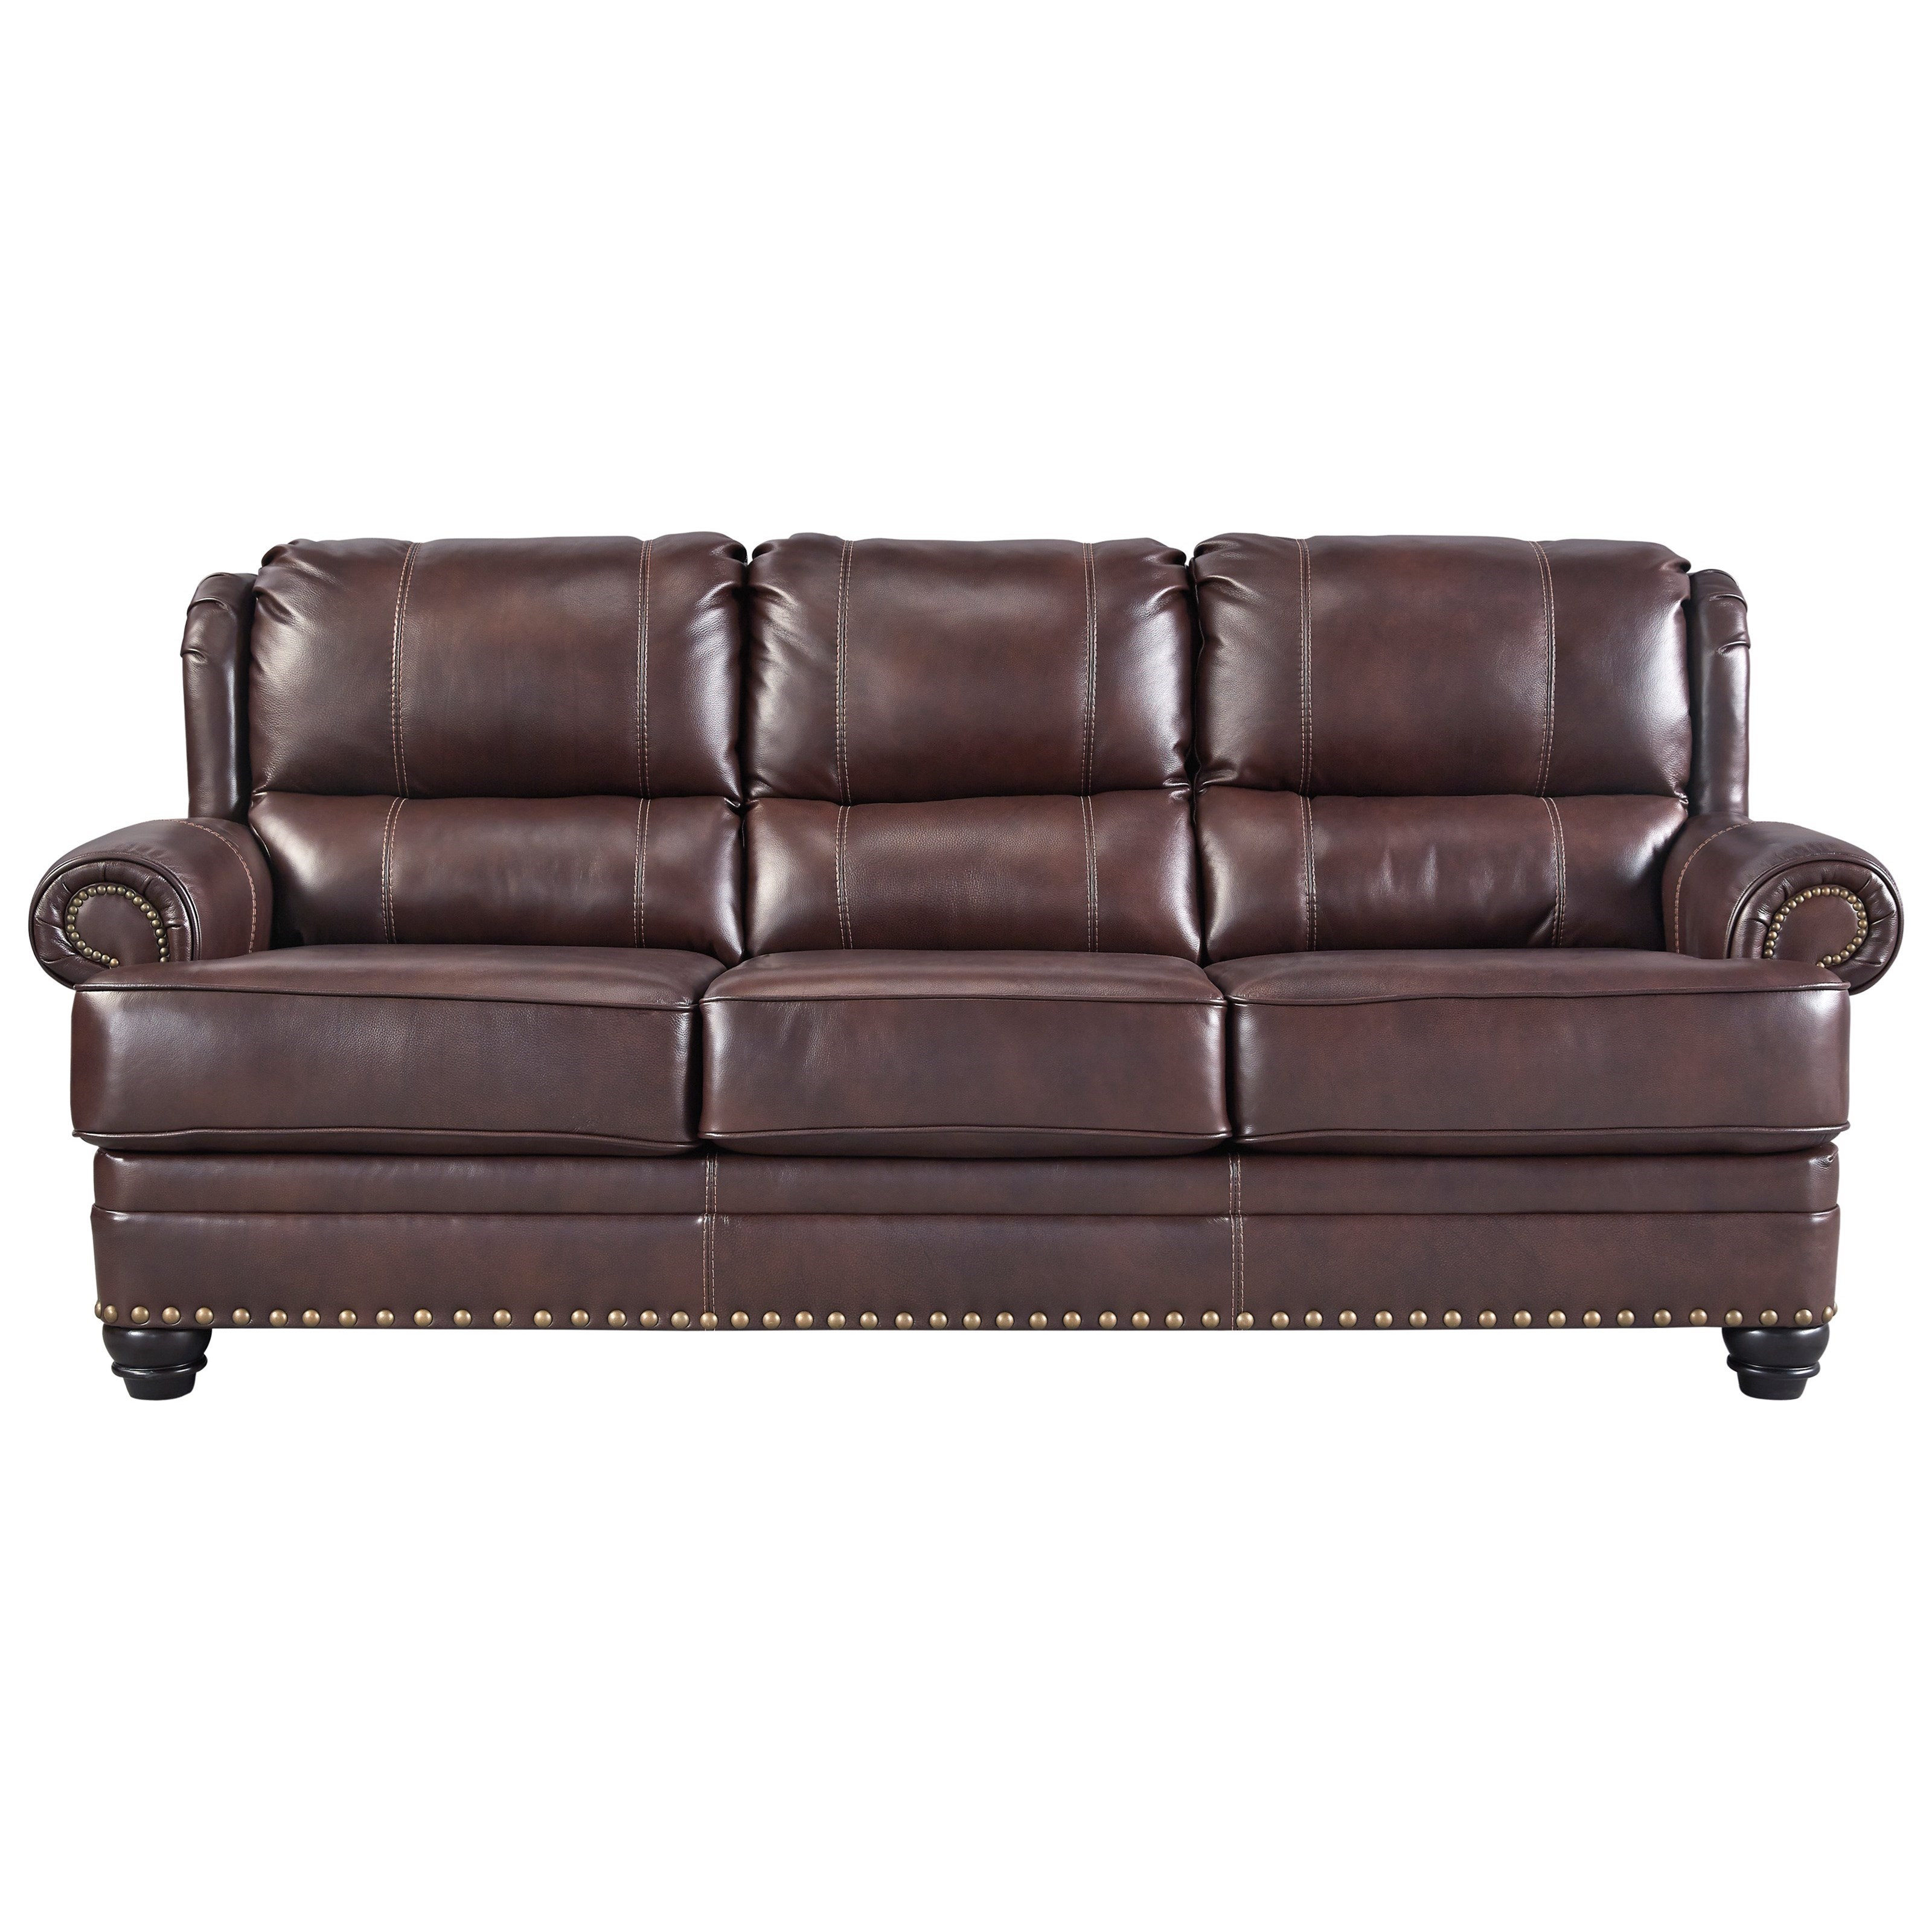 Signature Design by Ashley Glengary Queen Sofa Sleeper - Item Number: 3170039